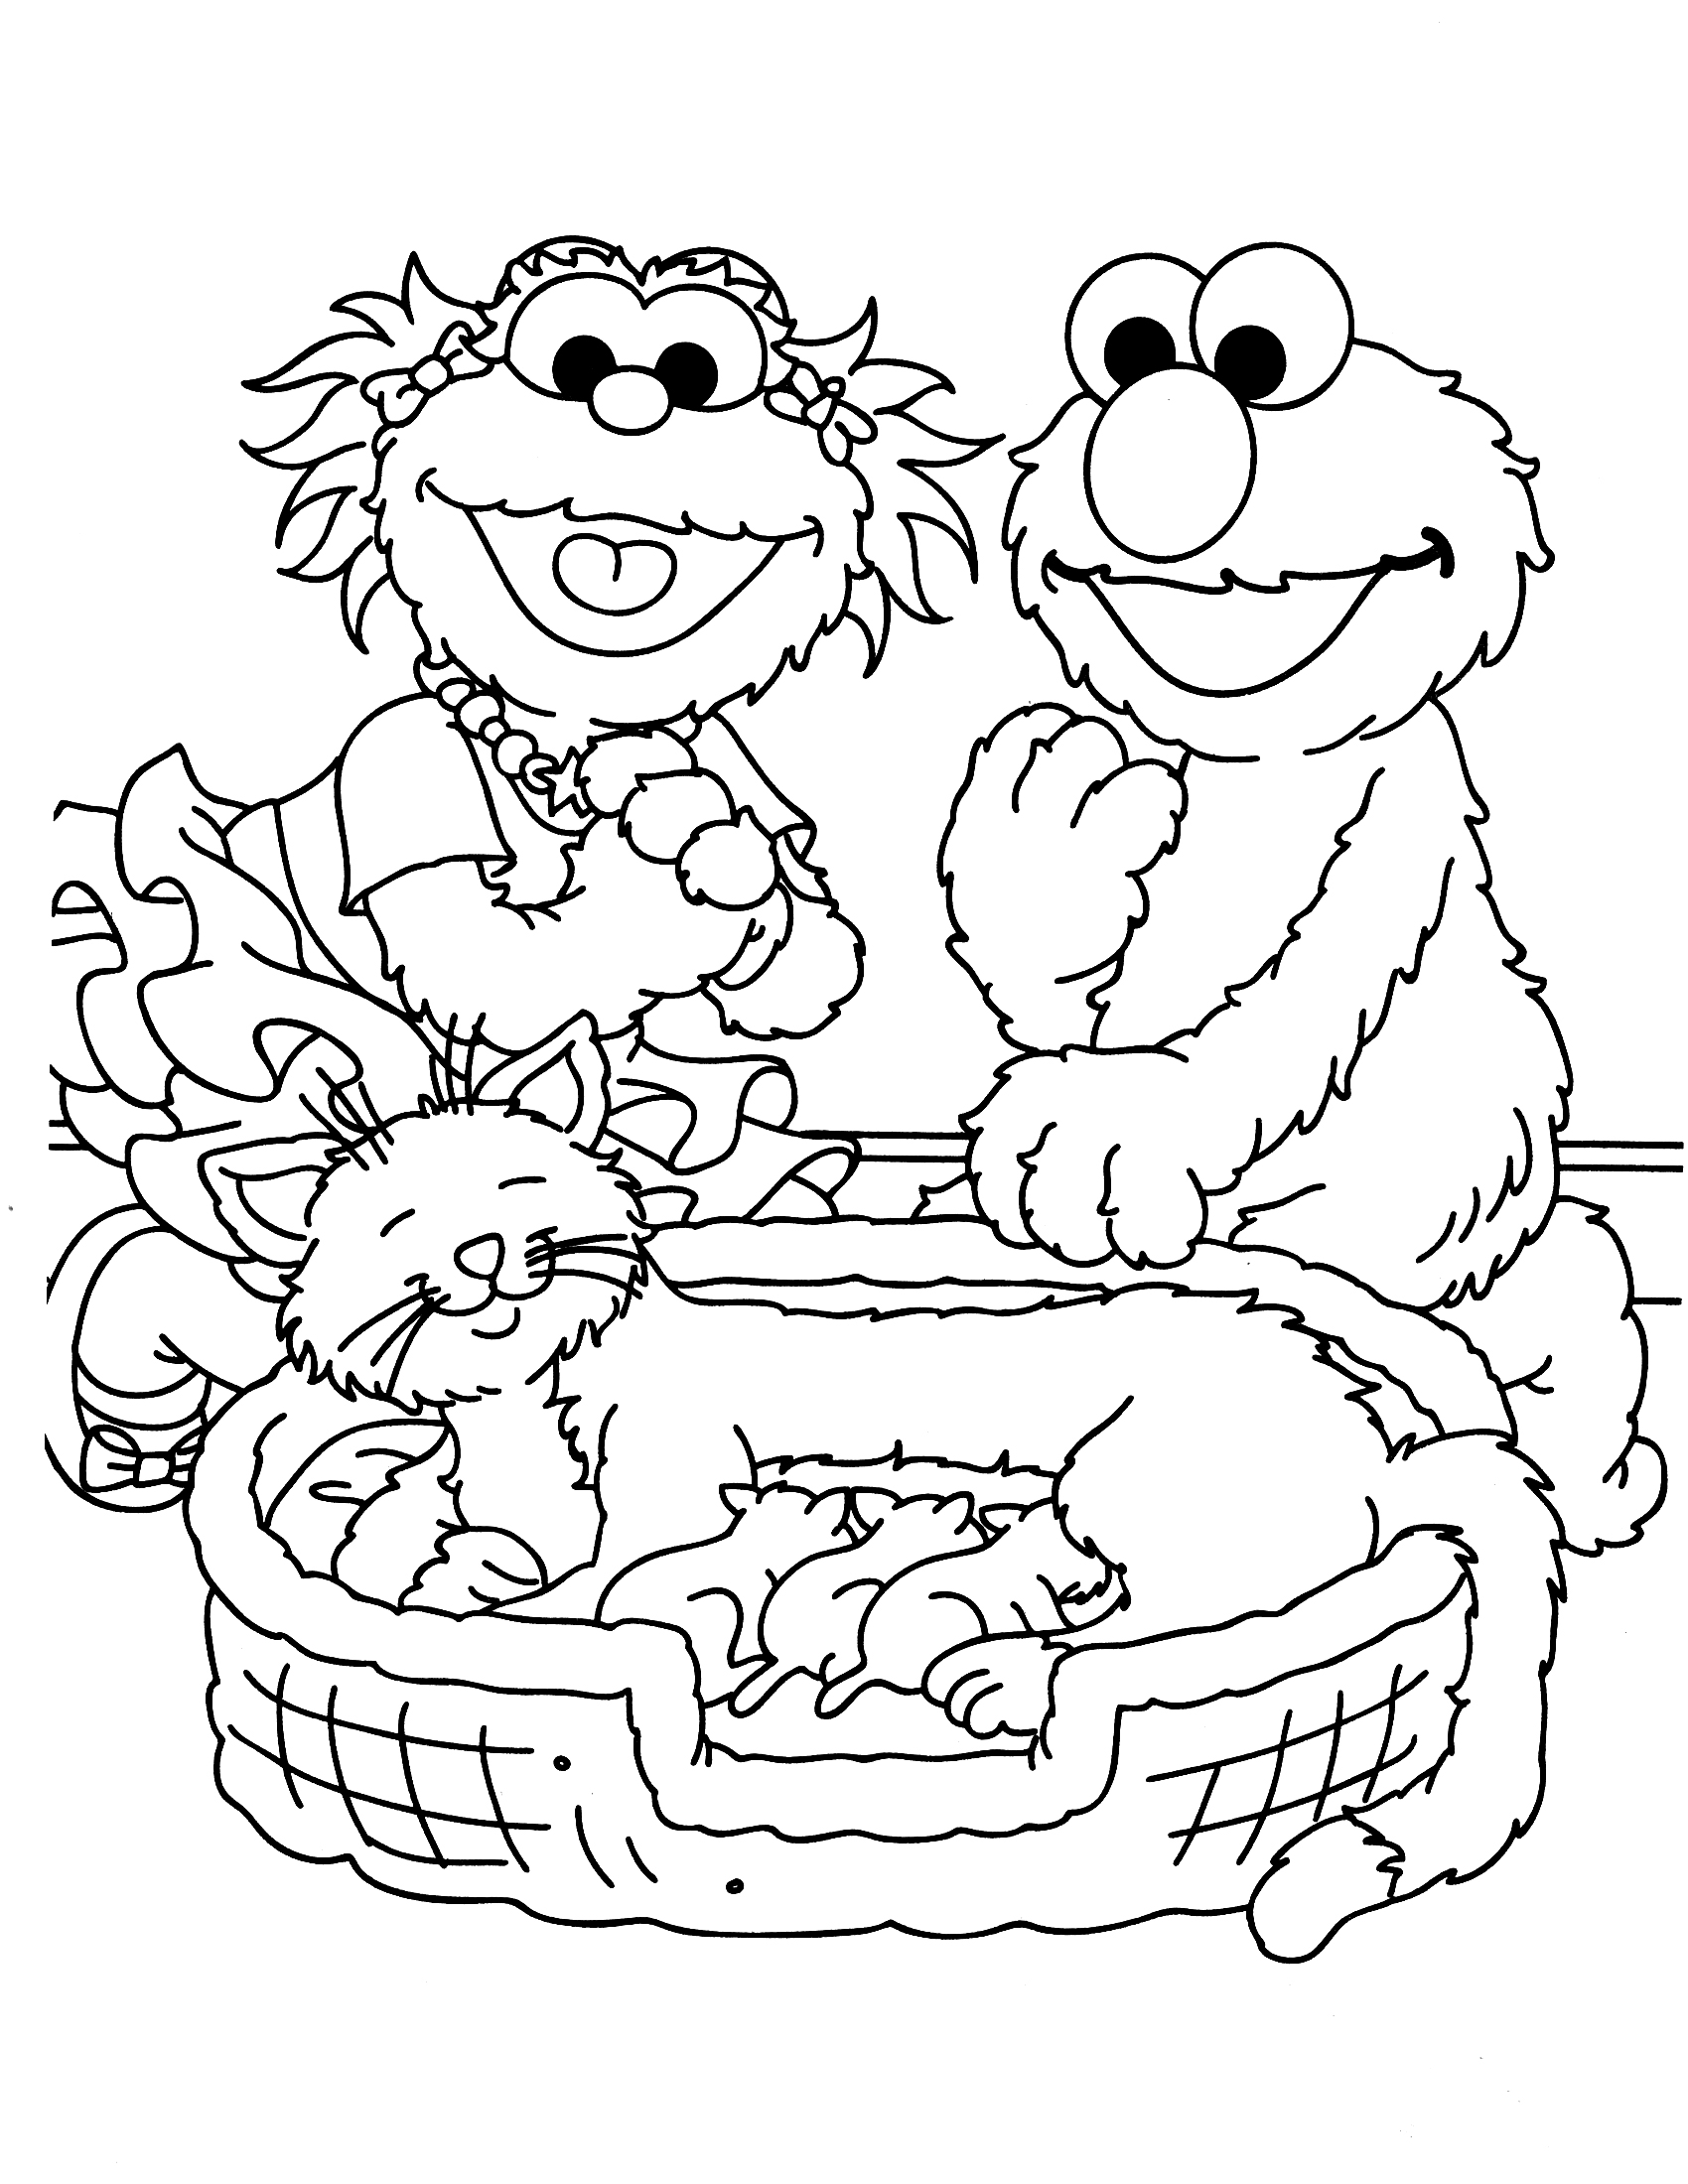 sesame street character coloring pages - photo#15